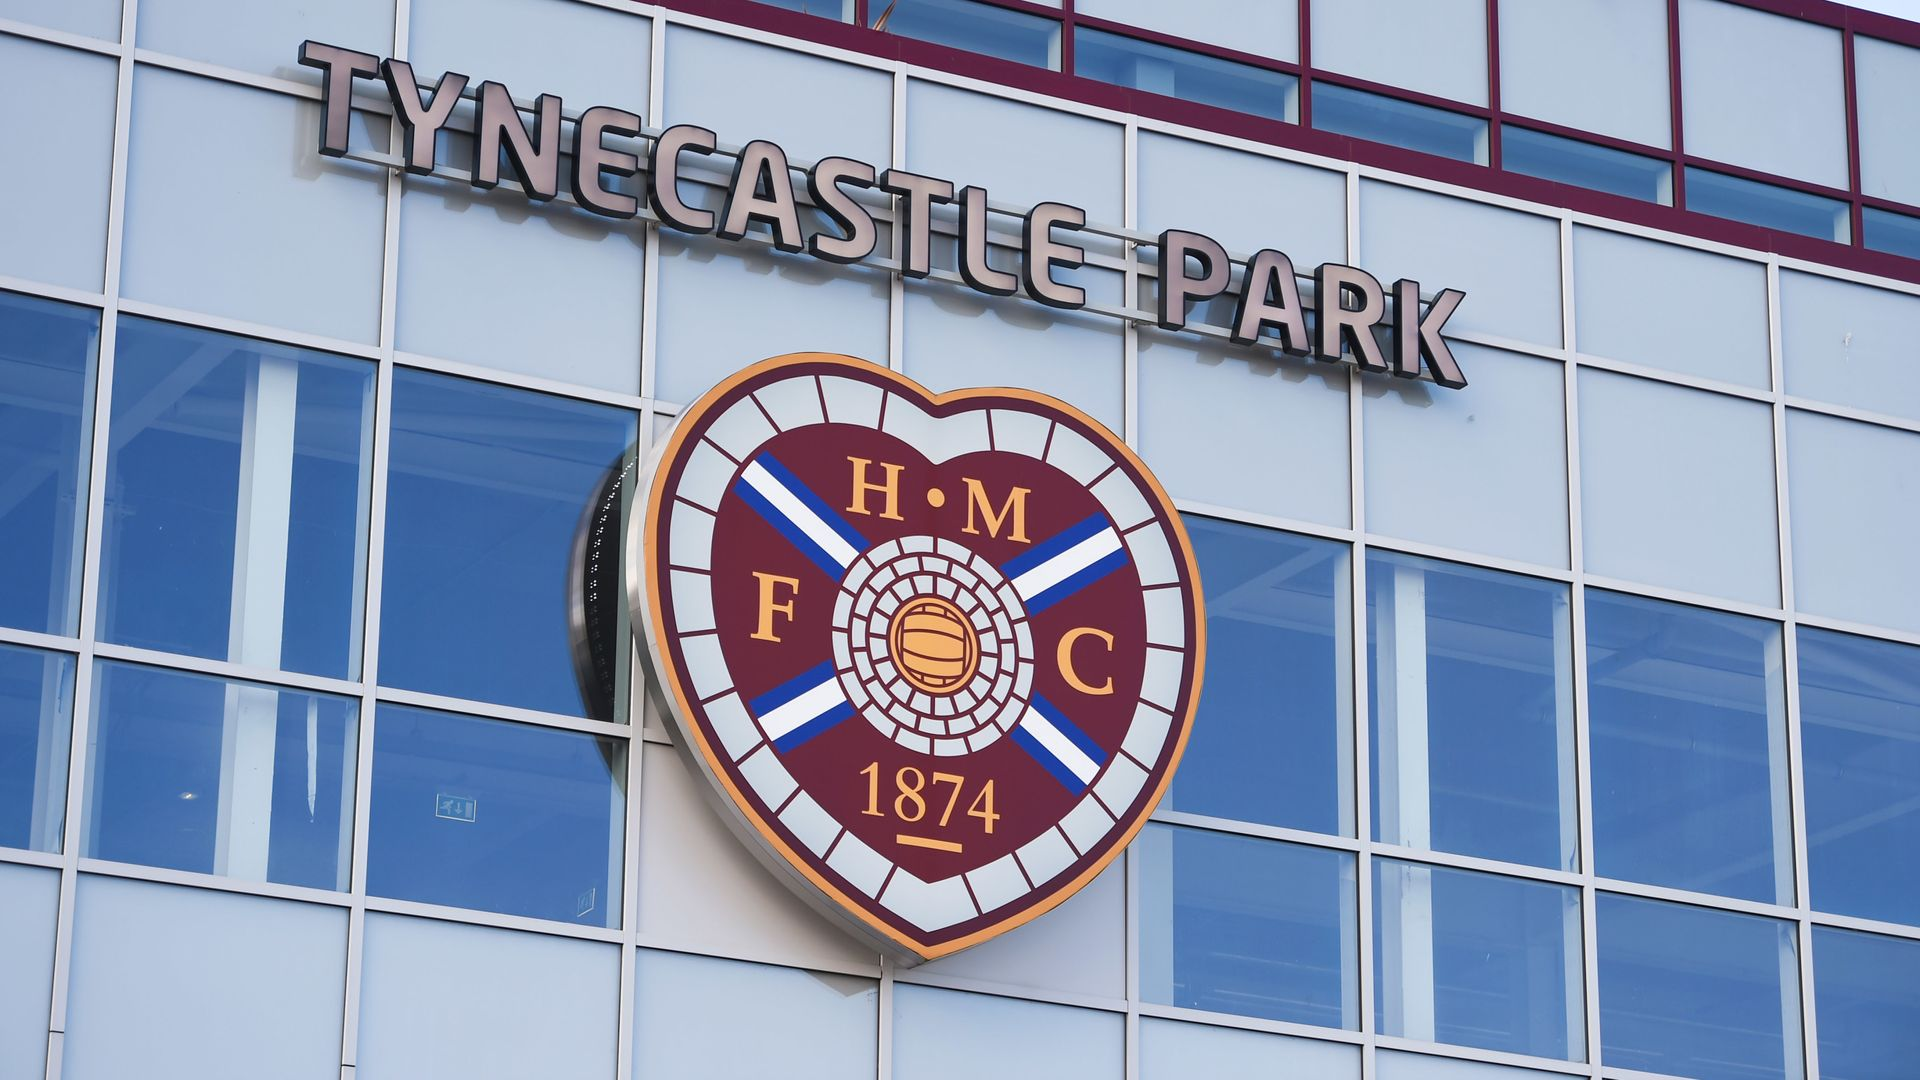 Judge considering motions in Hearts and Thistle case